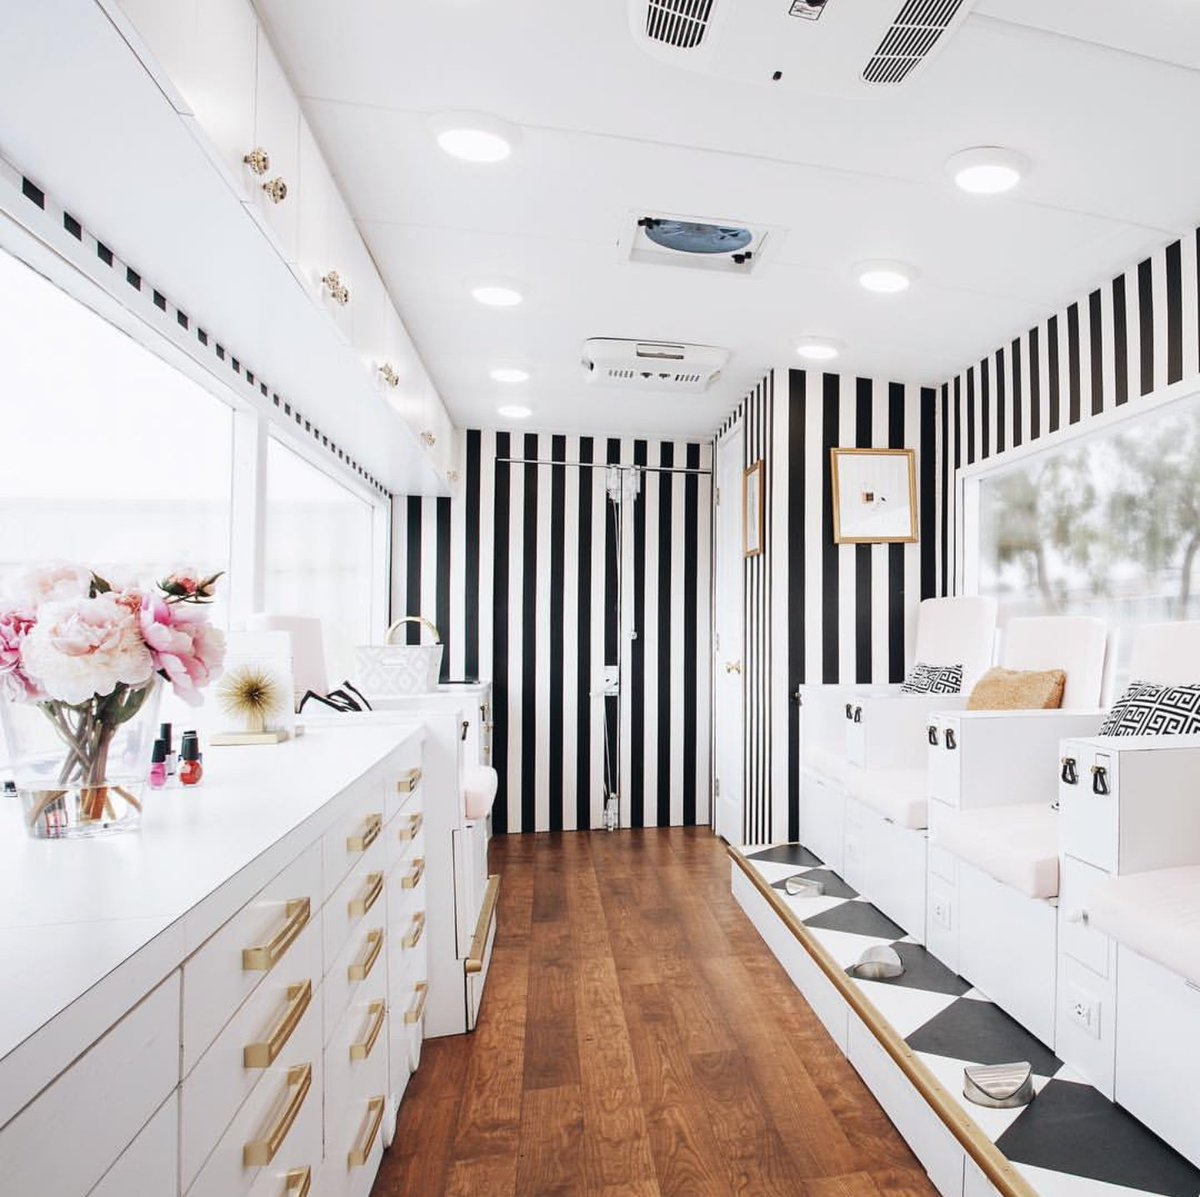 "Nail Salon Los Angeles Ca: Black Owned Business On Twitter: ""Colvon Mobile Nail Salon"